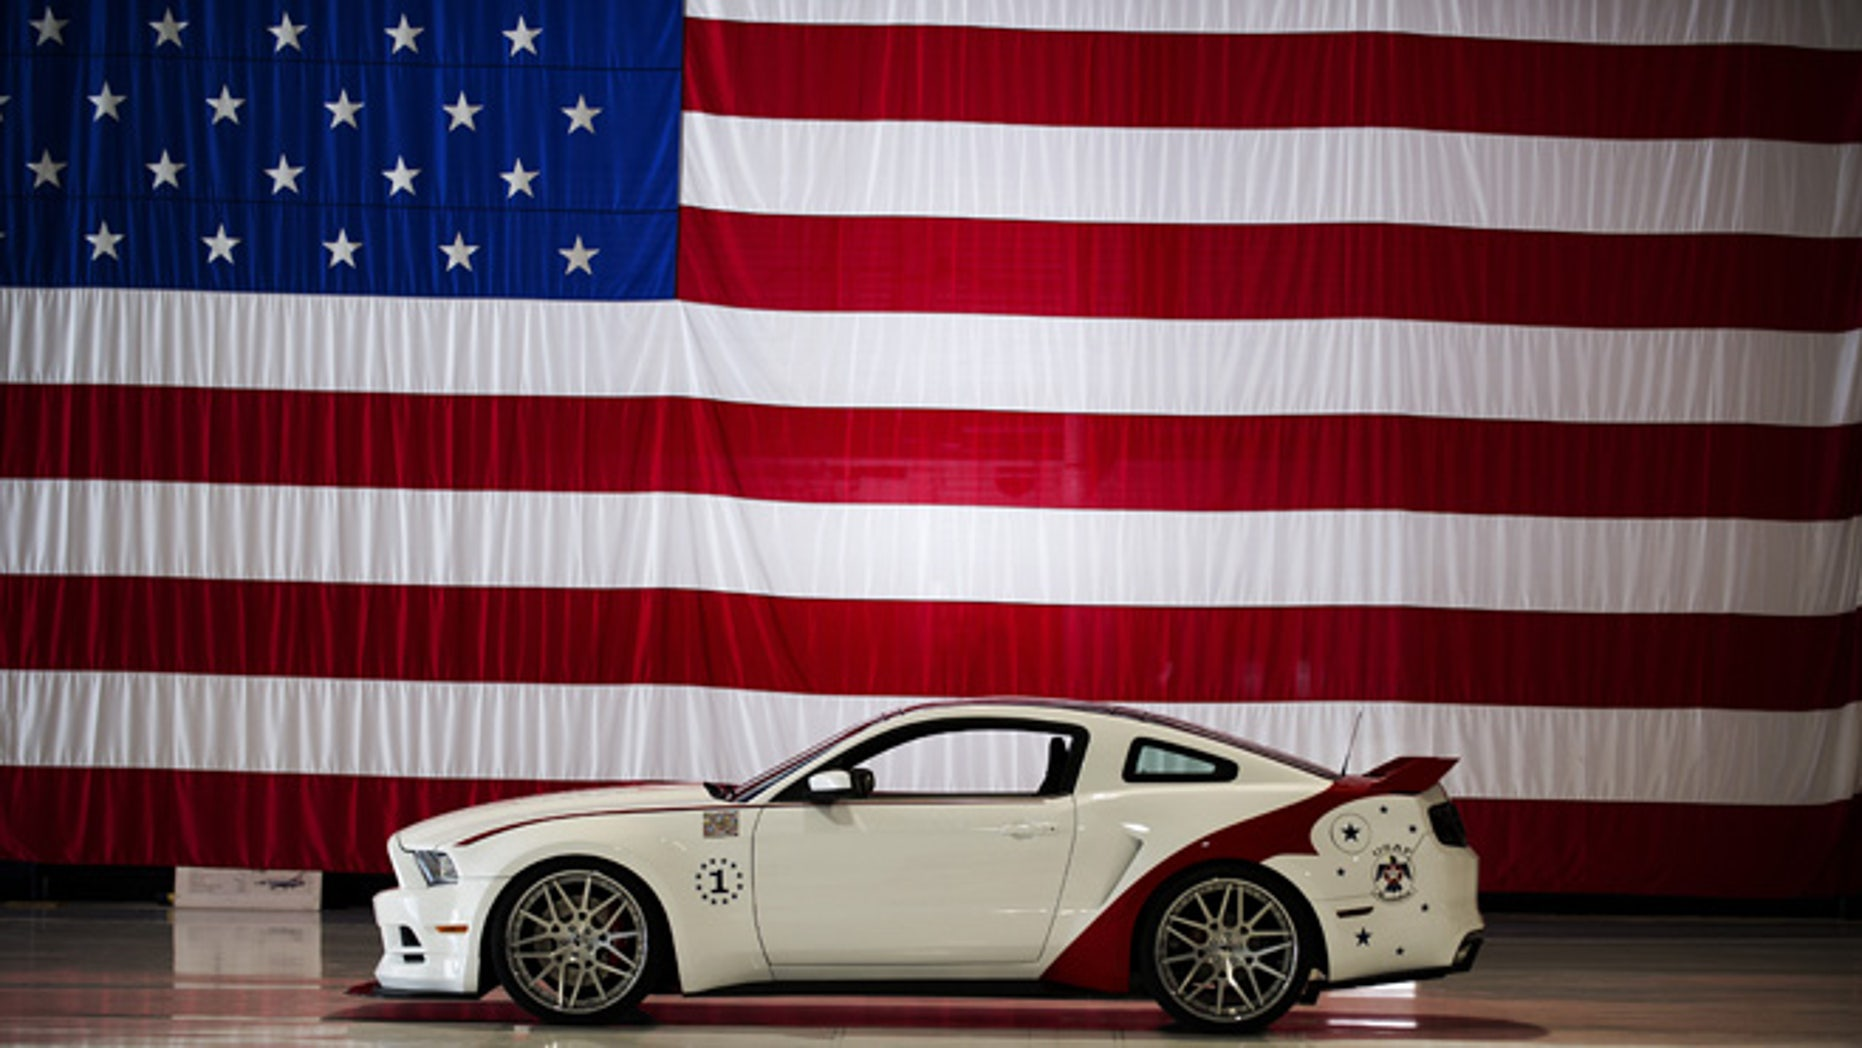 U.S. Air Force Thunderbirds edition 2014 Ford Mustang